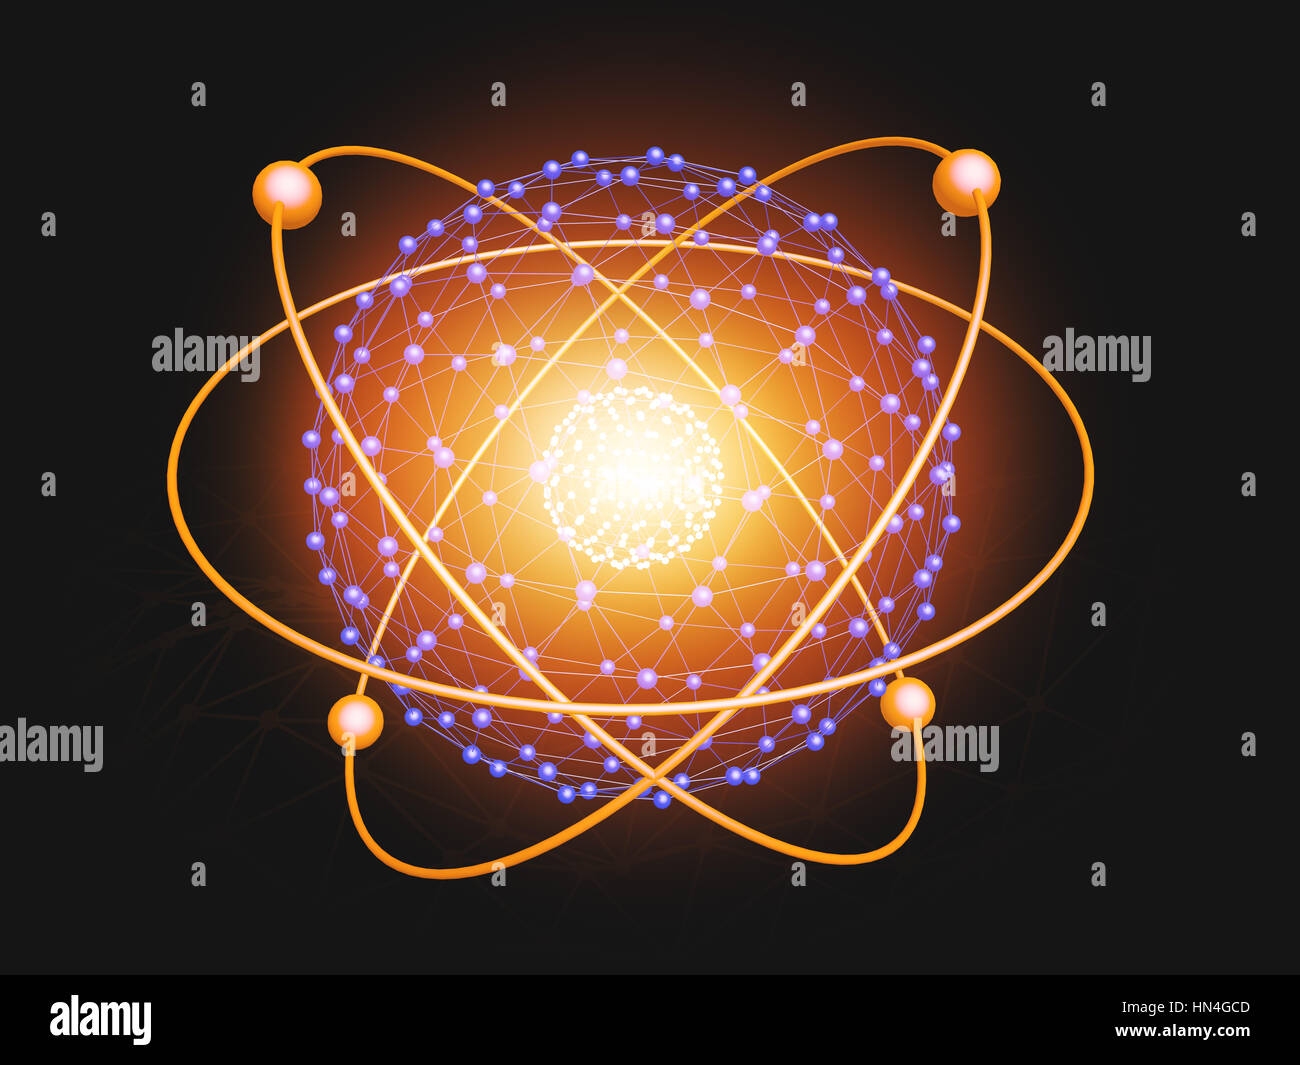 Nucleus of Atom Nuclear explode ray radiation light science abstract blur background. - Stock Image